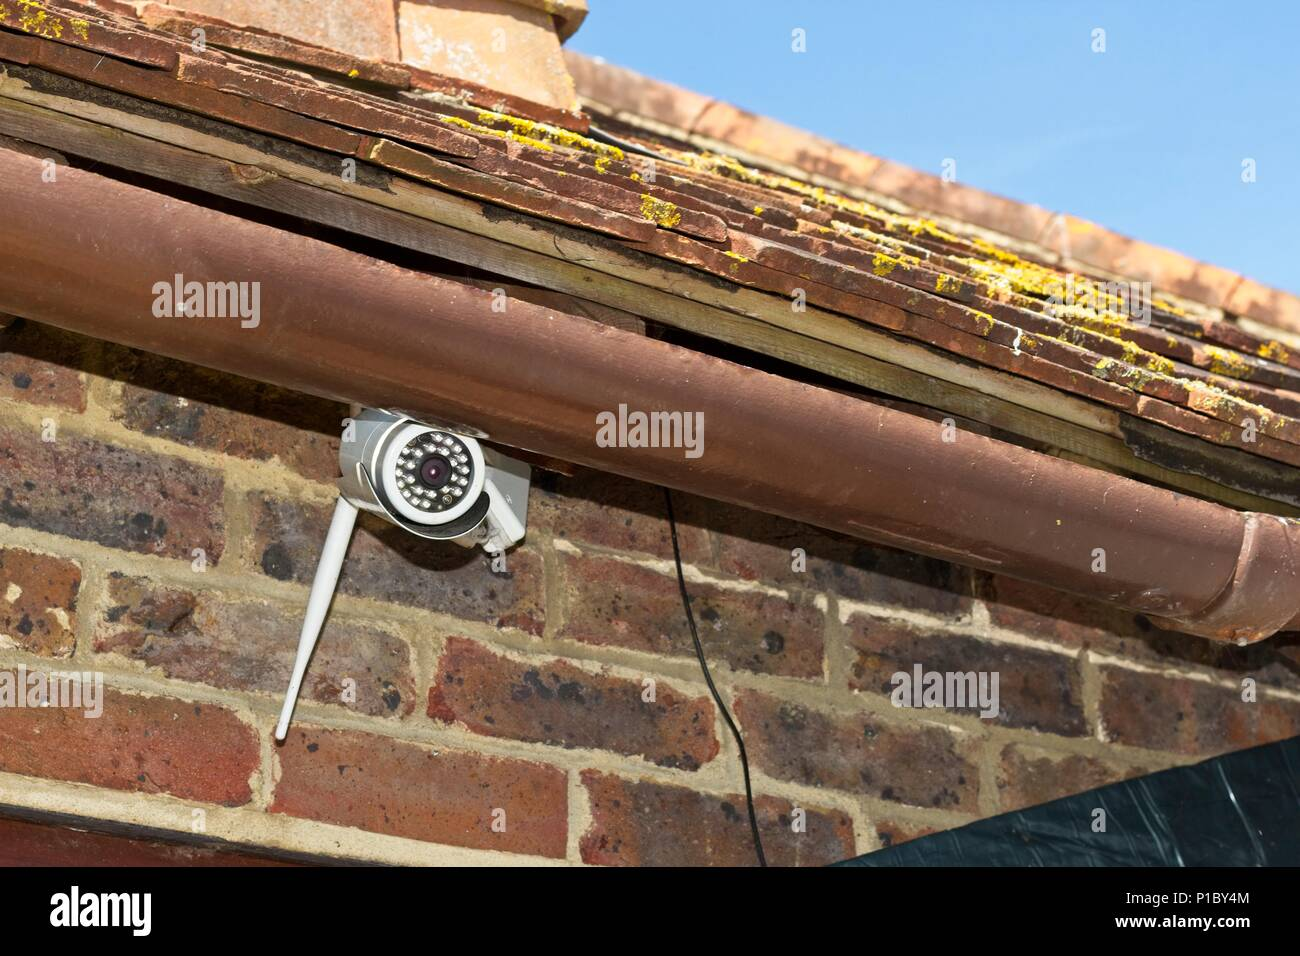 CCTV camera on outside of house, East Sussex, UK - Stock Image